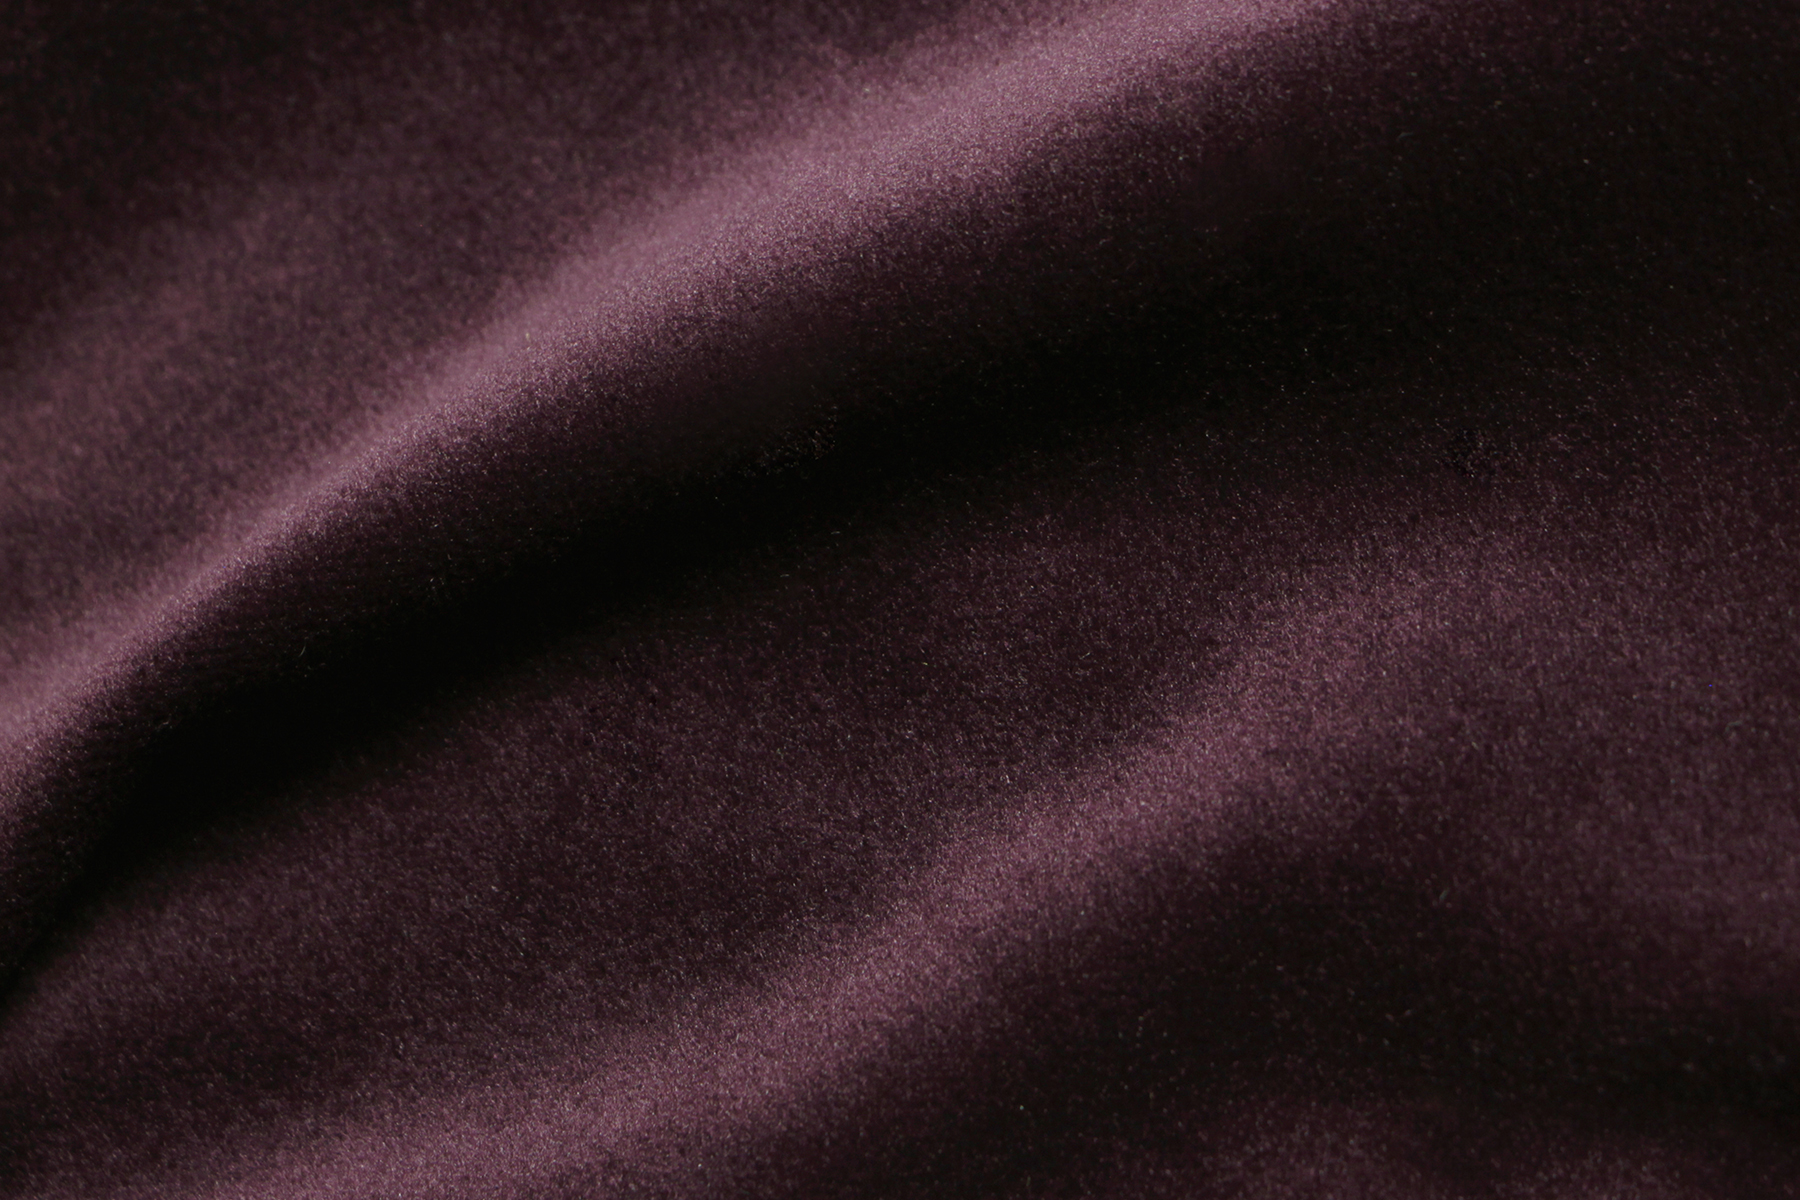 COZY VELVET POTENT PURPLE Fabric by KOKET